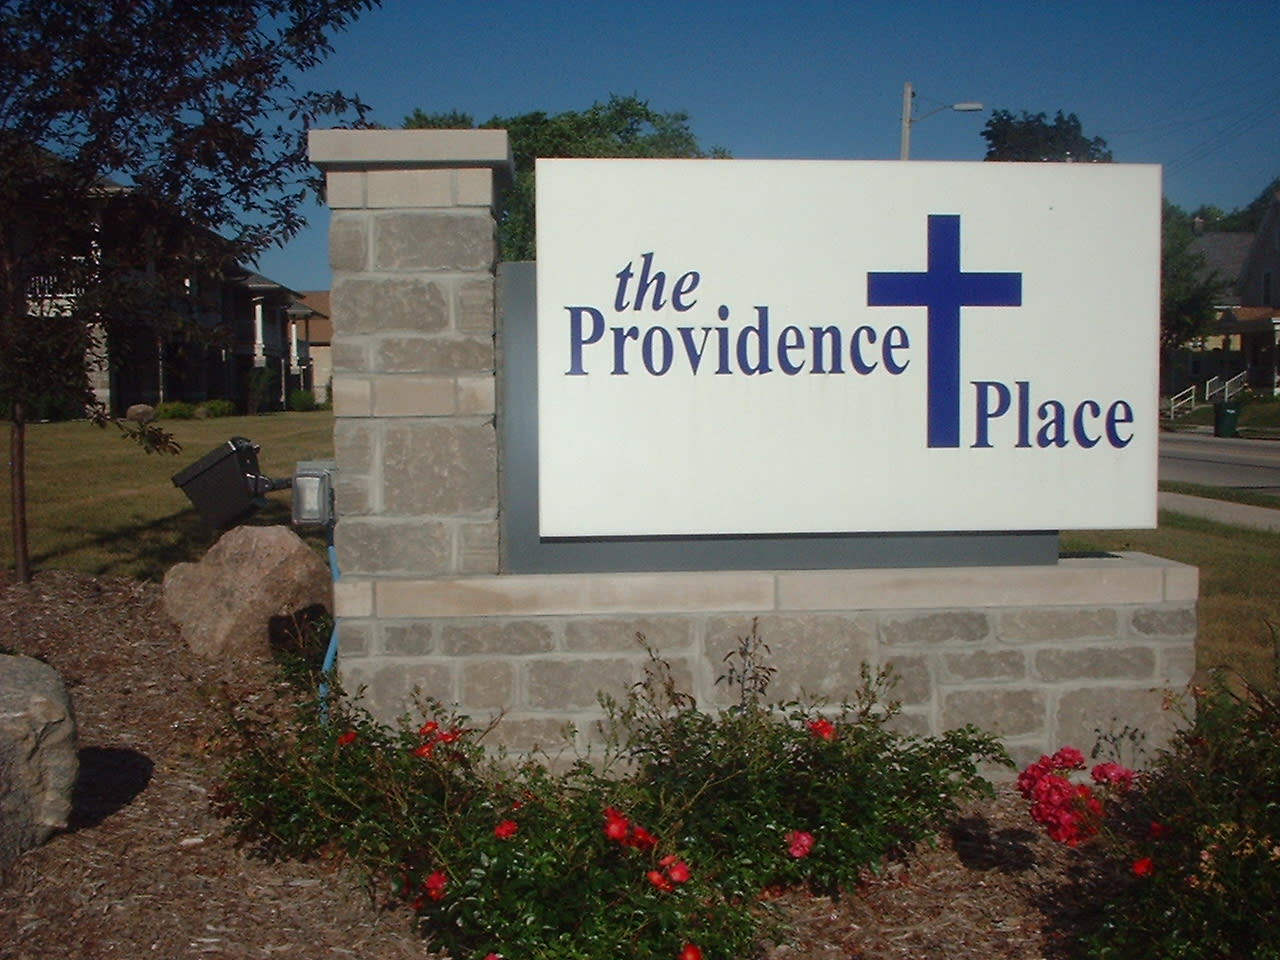 Photo 1 of The Providence Place an IRC